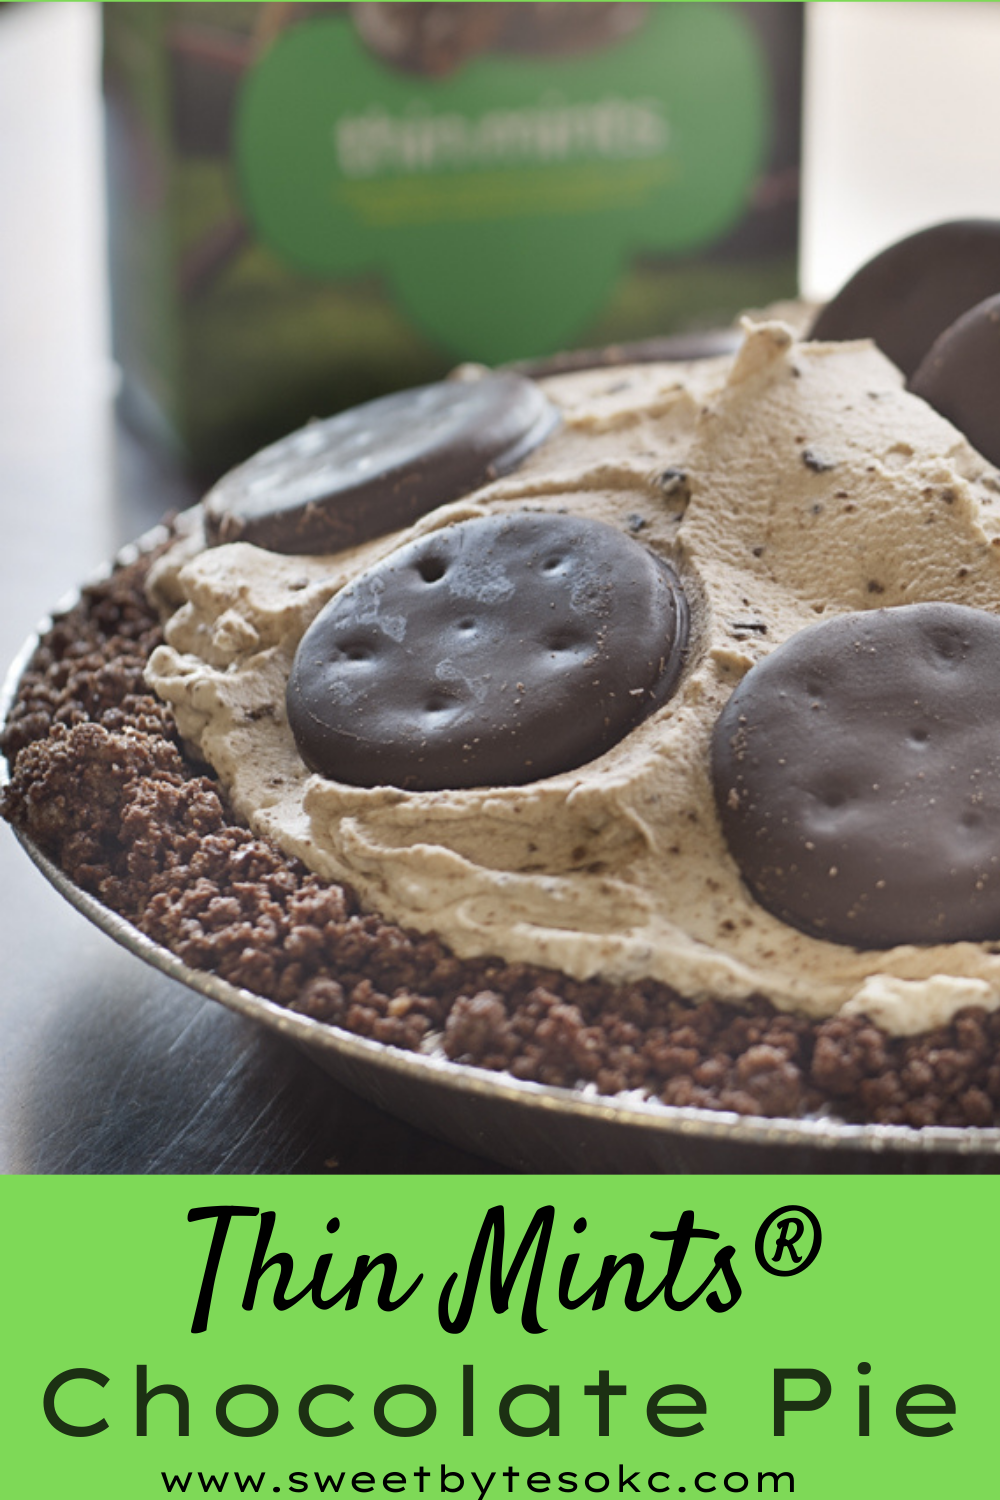 a chocolate pie made with thin mints girl scout cookies and a box of thin mints girl scout cookies in the background